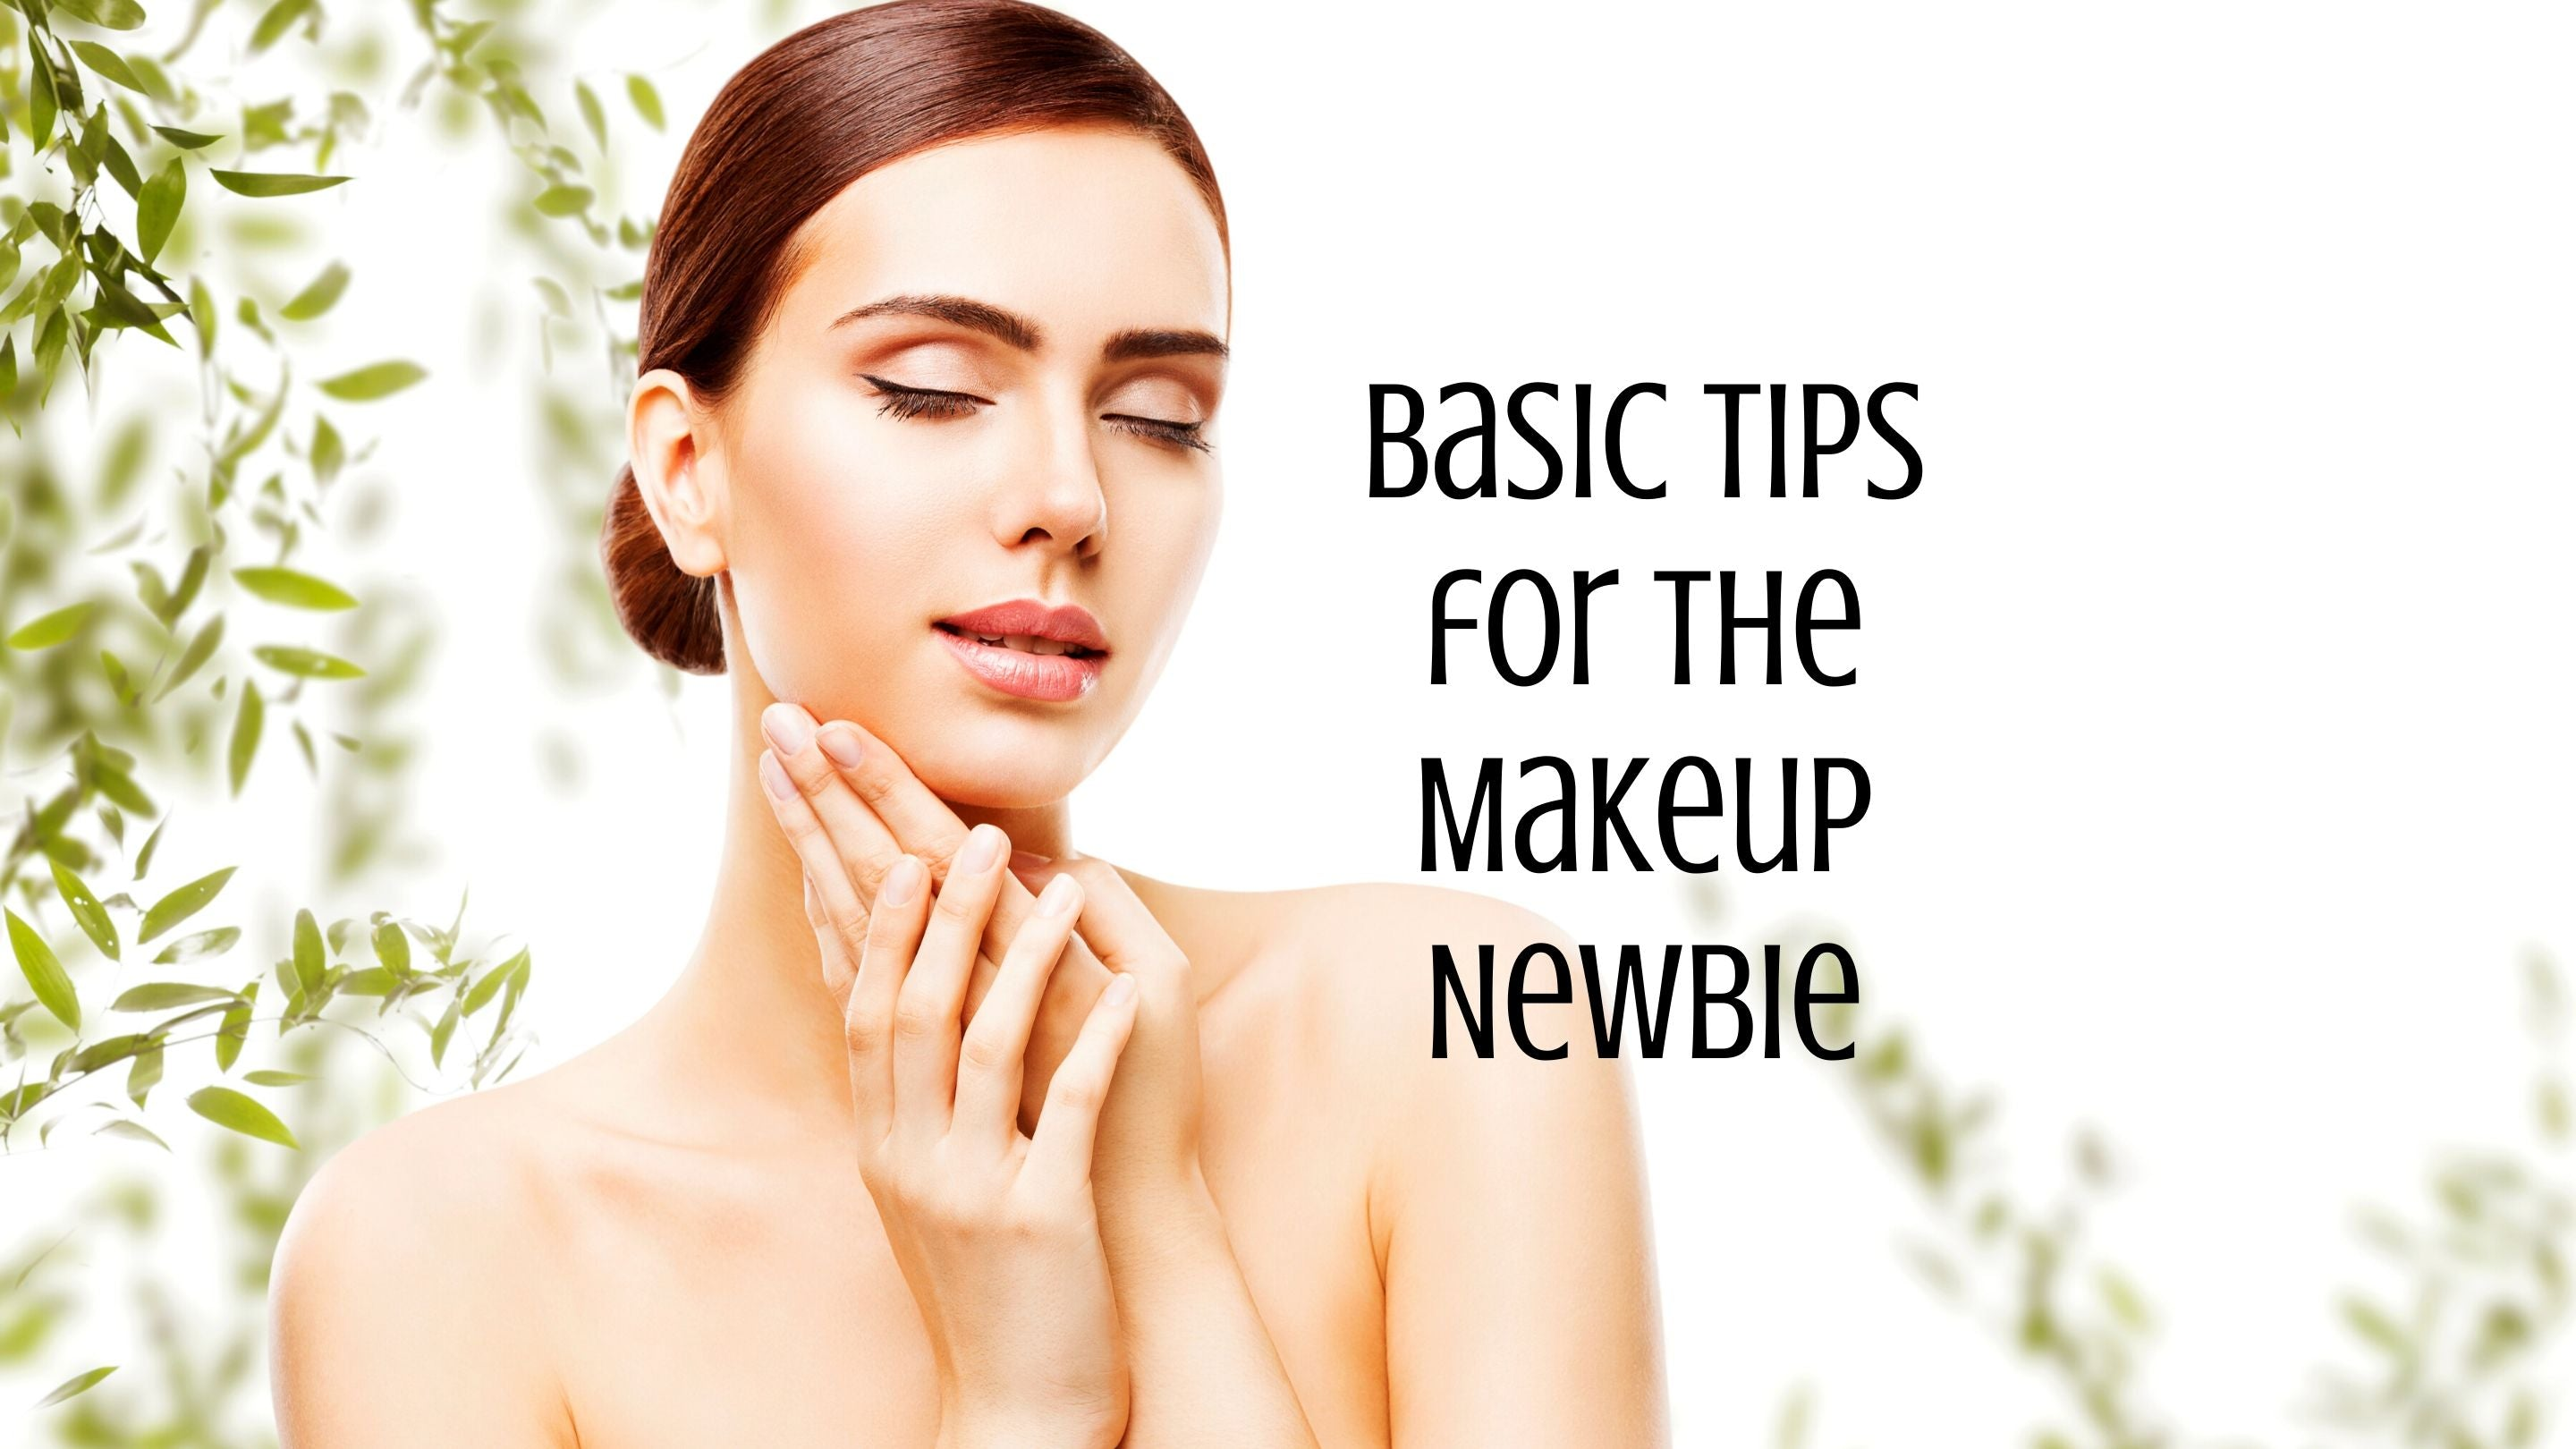 Am I Doing This Right? Basic Tips for the Makeup Newbie